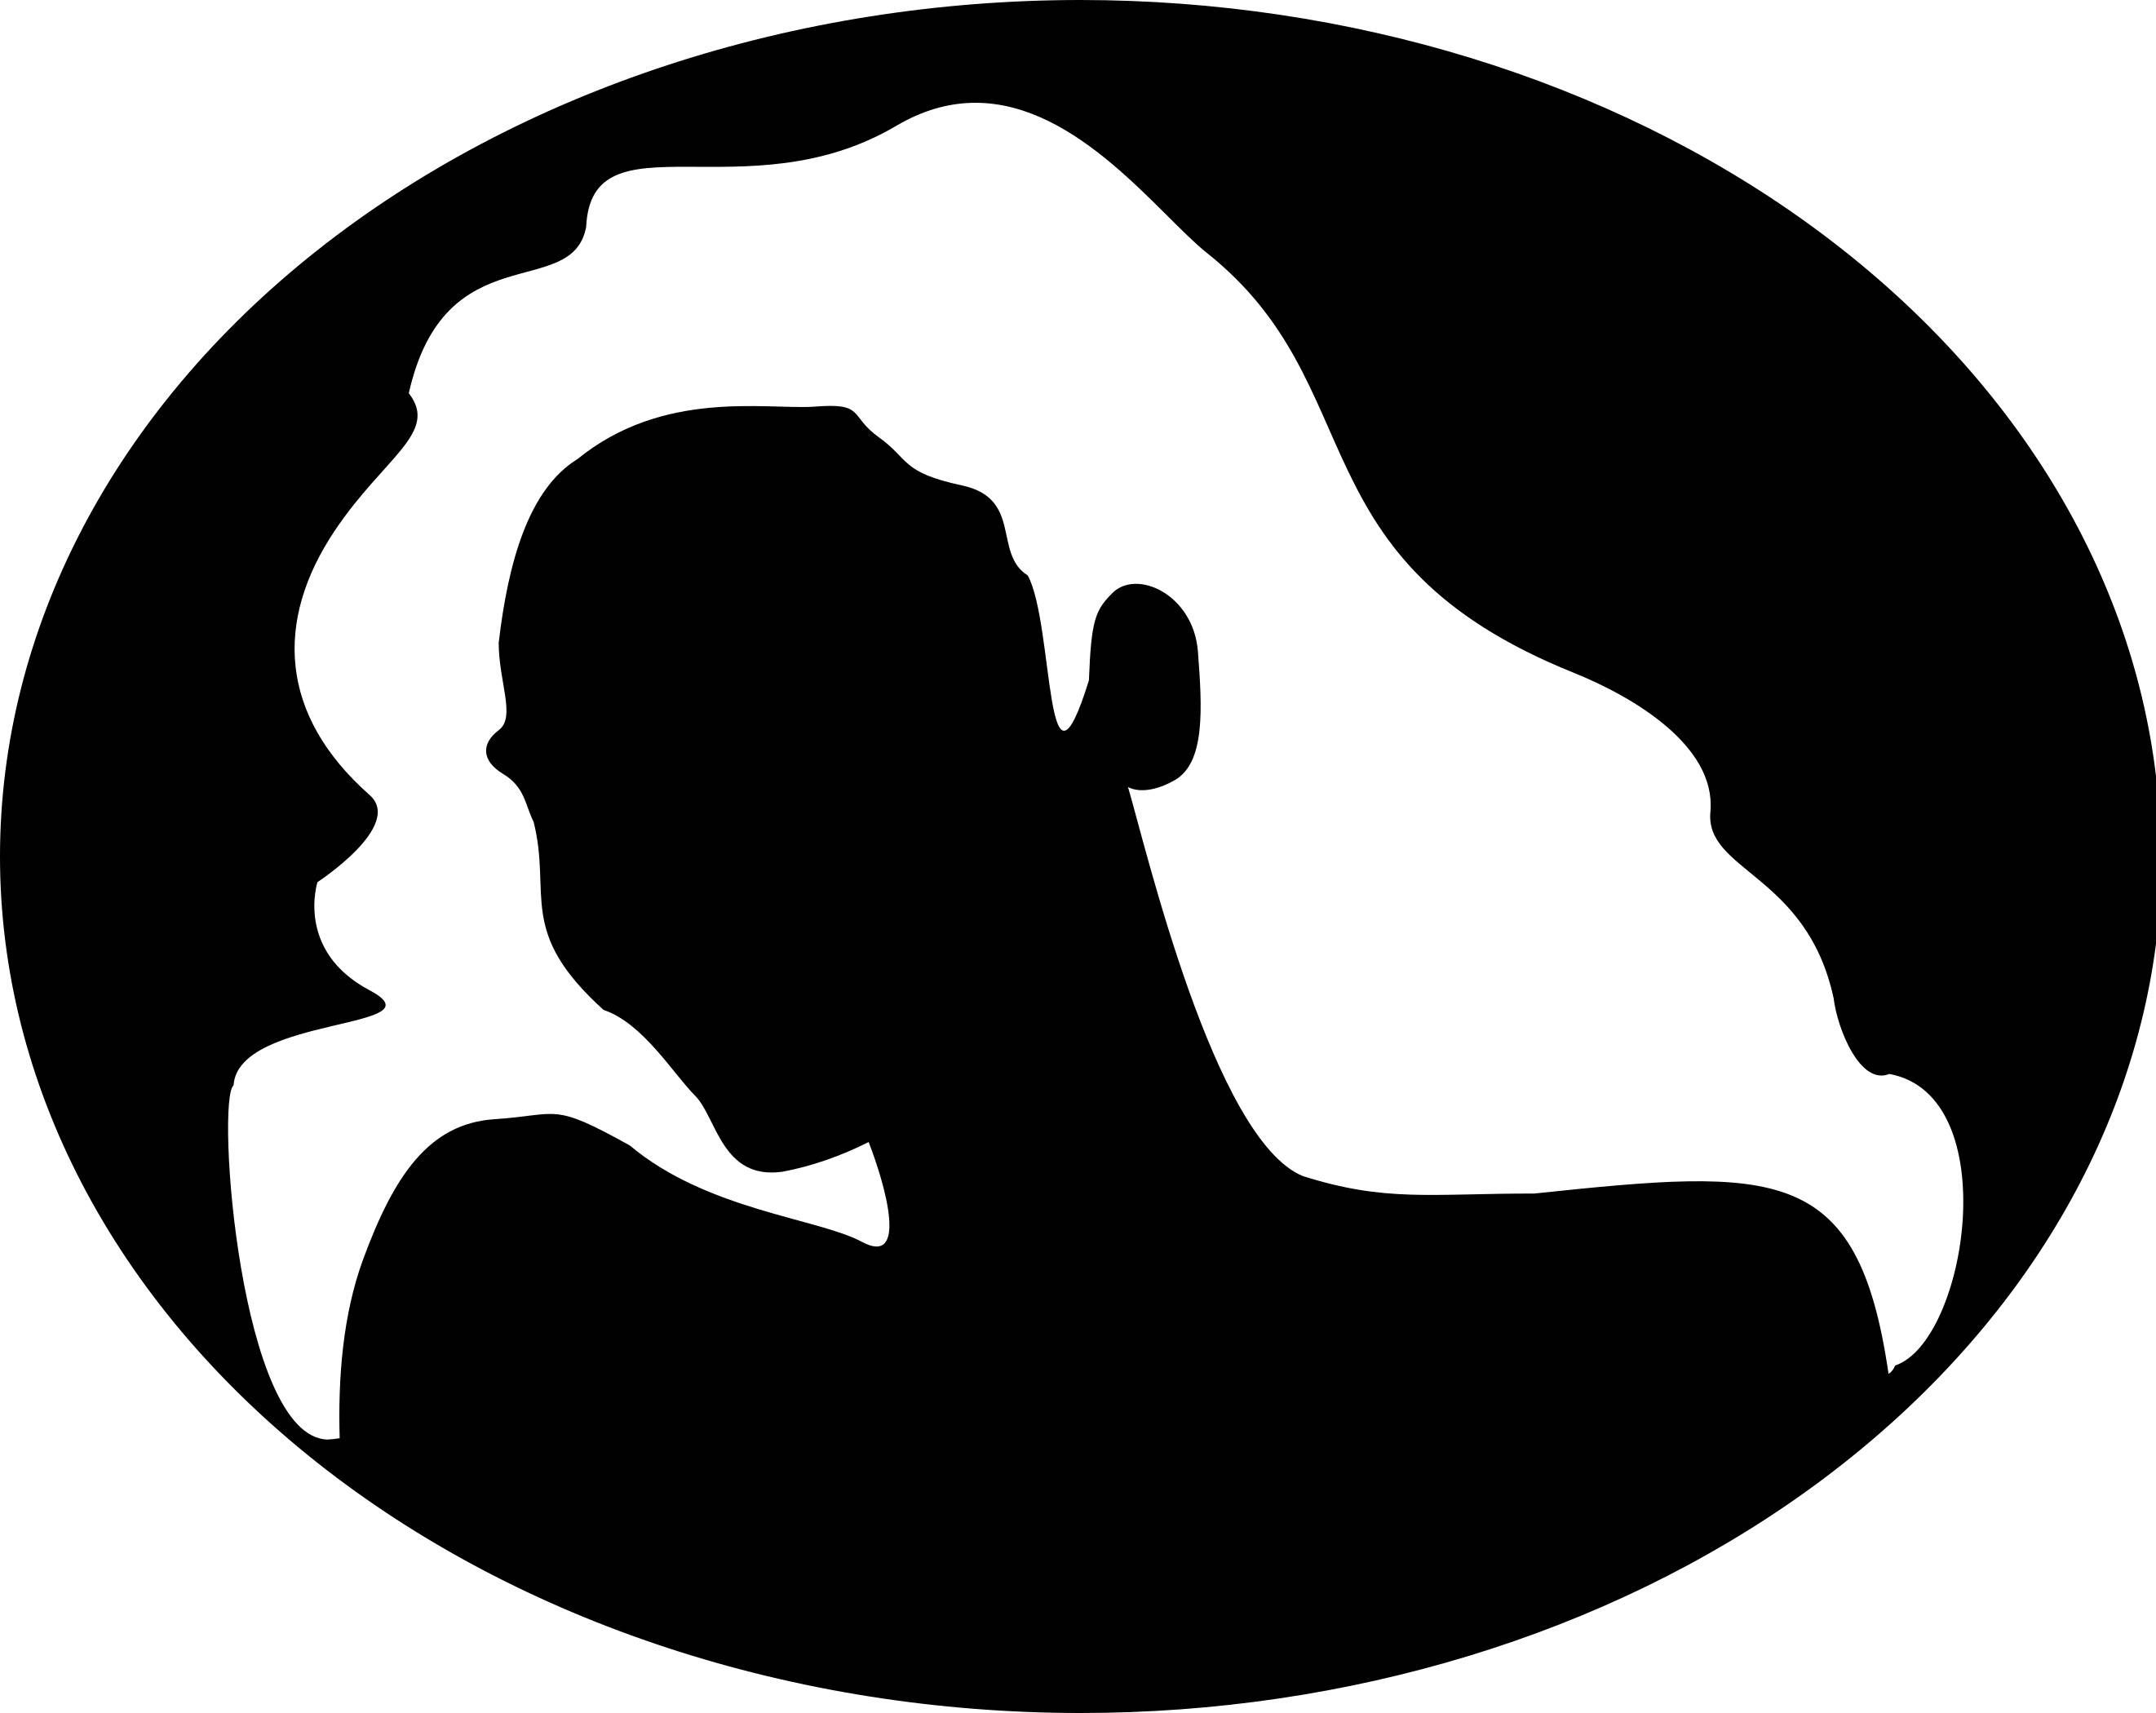 2643x2100 Woman Silhouette Svg Clip Art For Girls Dxf Files Digital Art